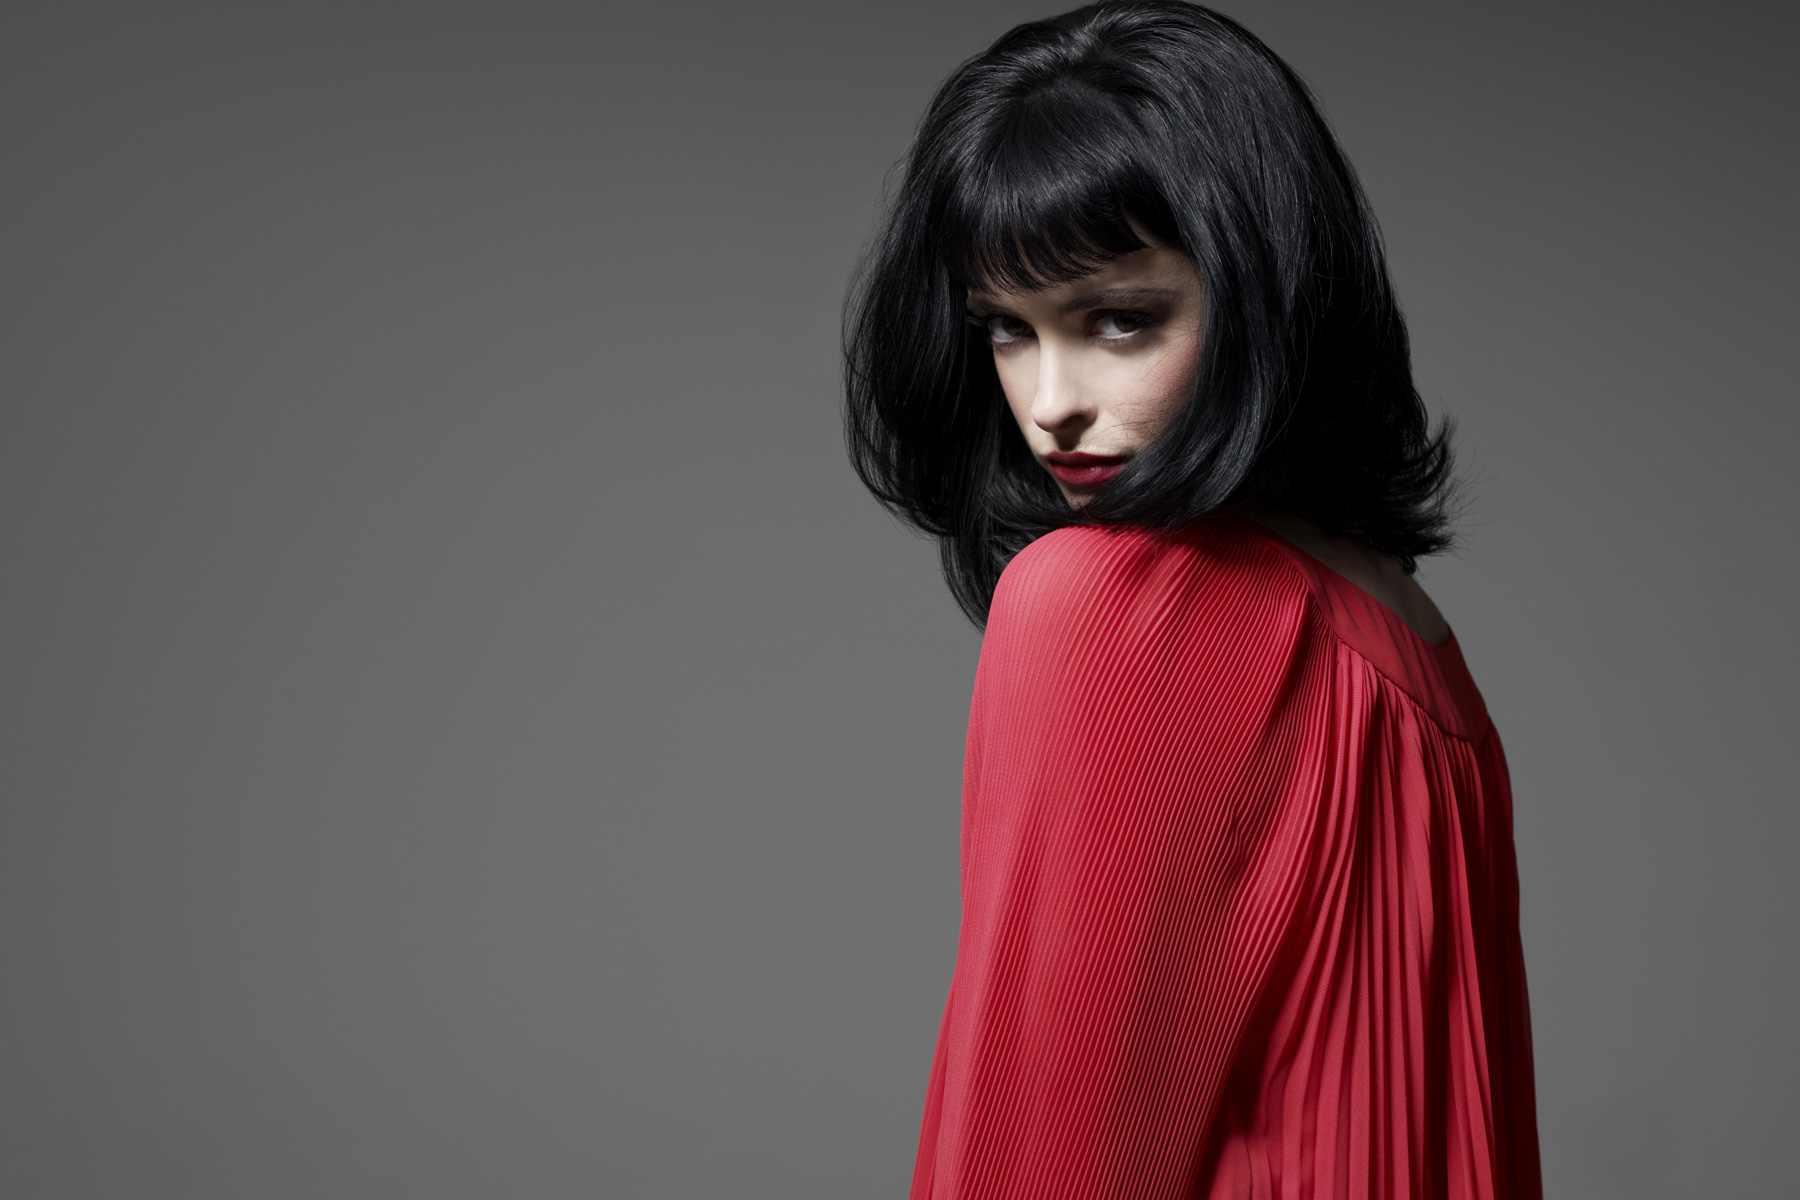 Portrait of Krysten Ritter photographed by Scott Council